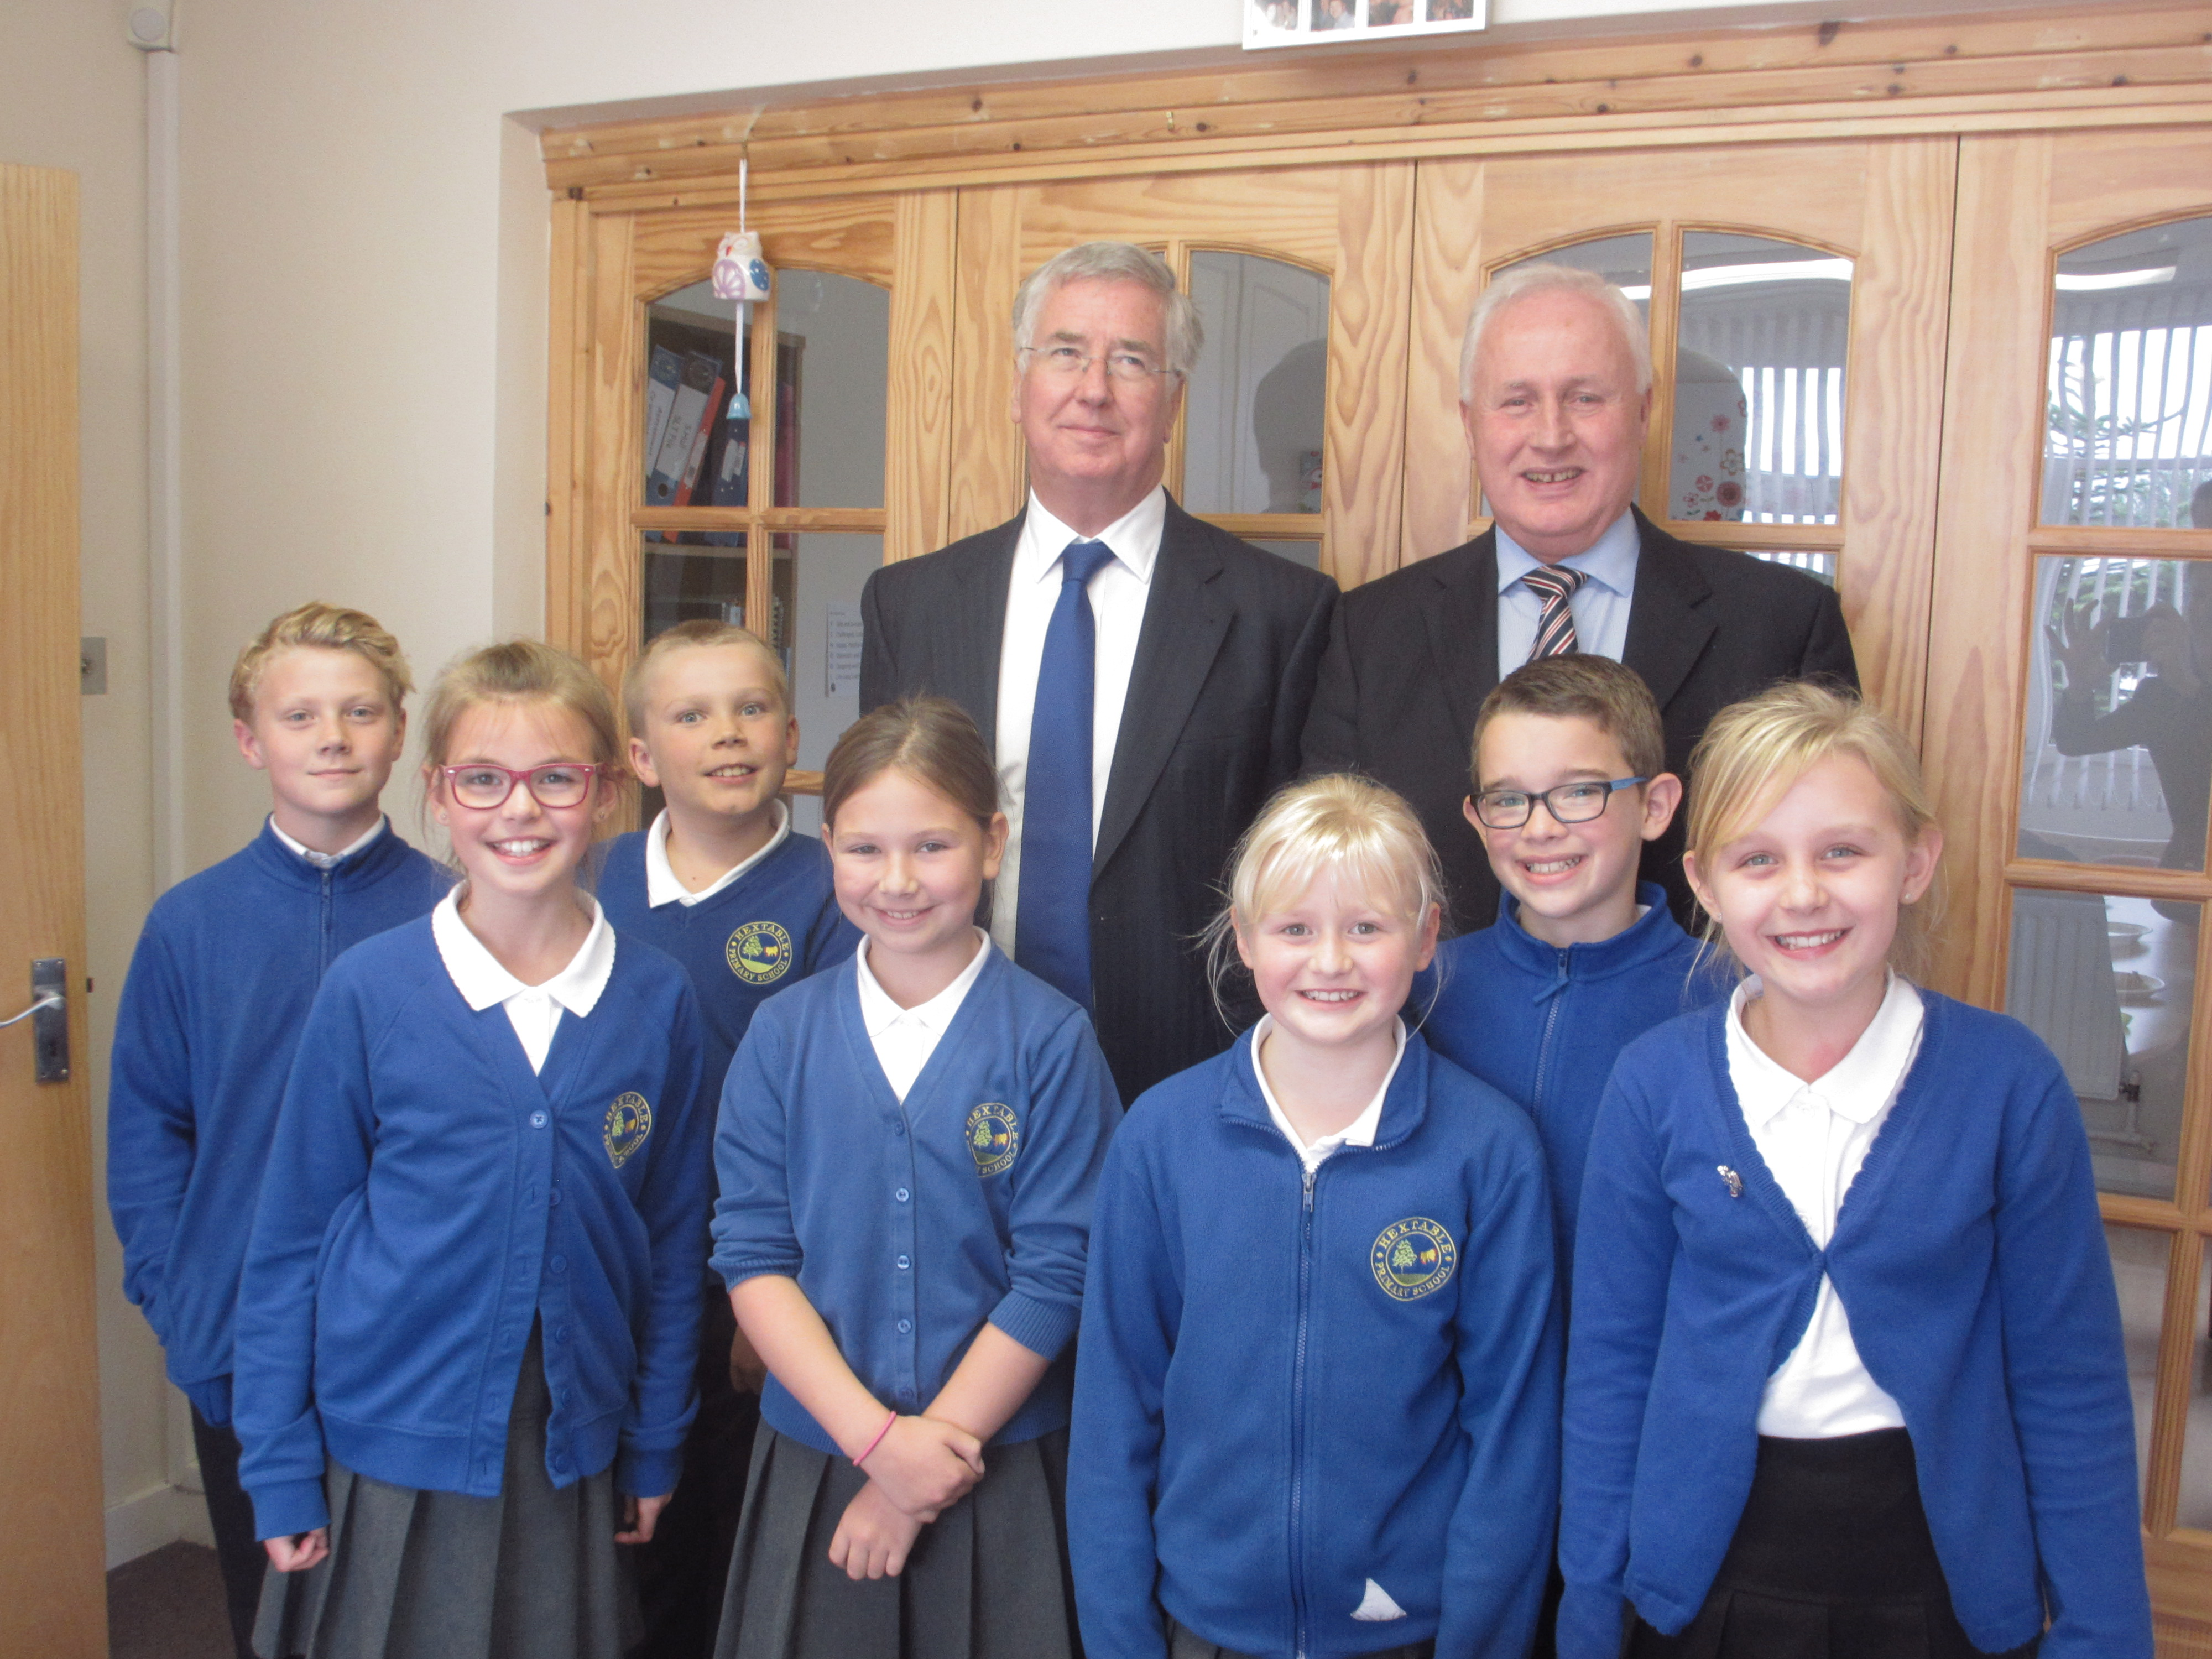 Michael Fallon with Hextable Primary School school council